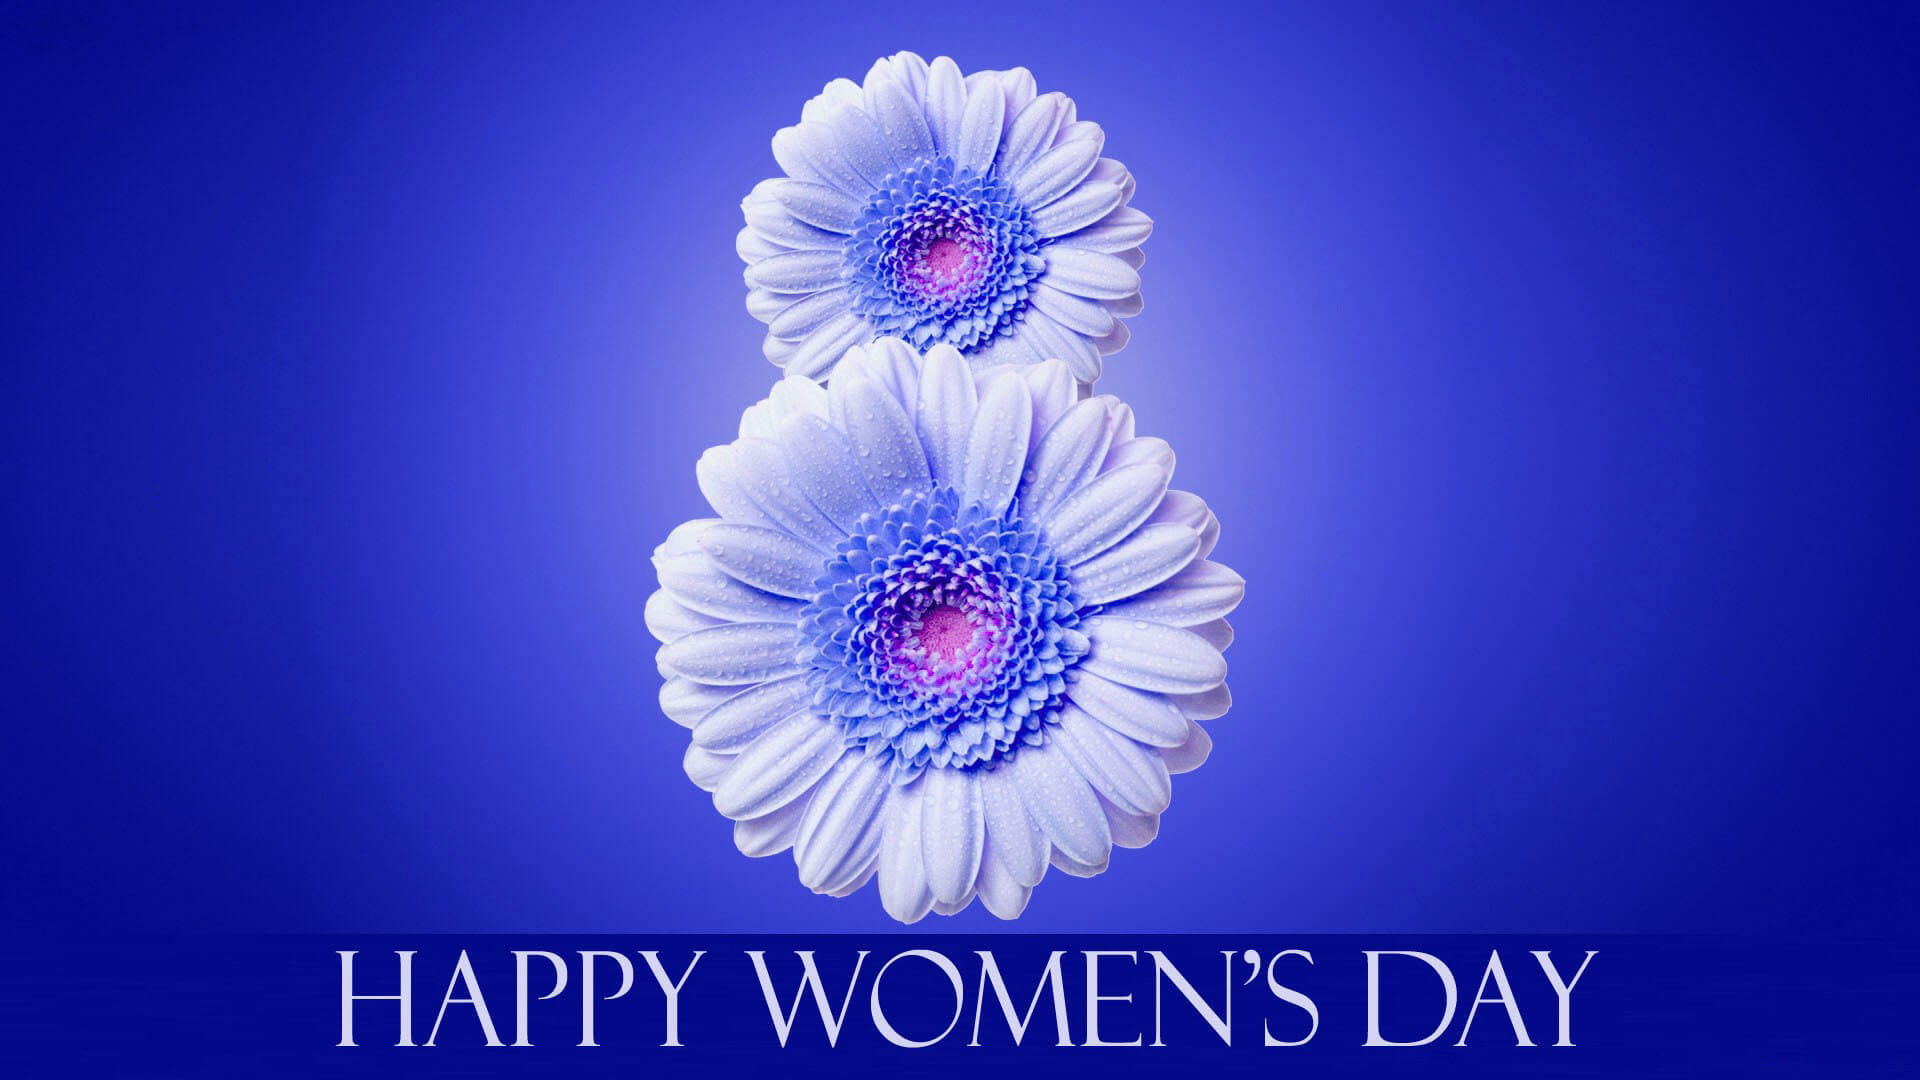 happy womens day march 8 flower image